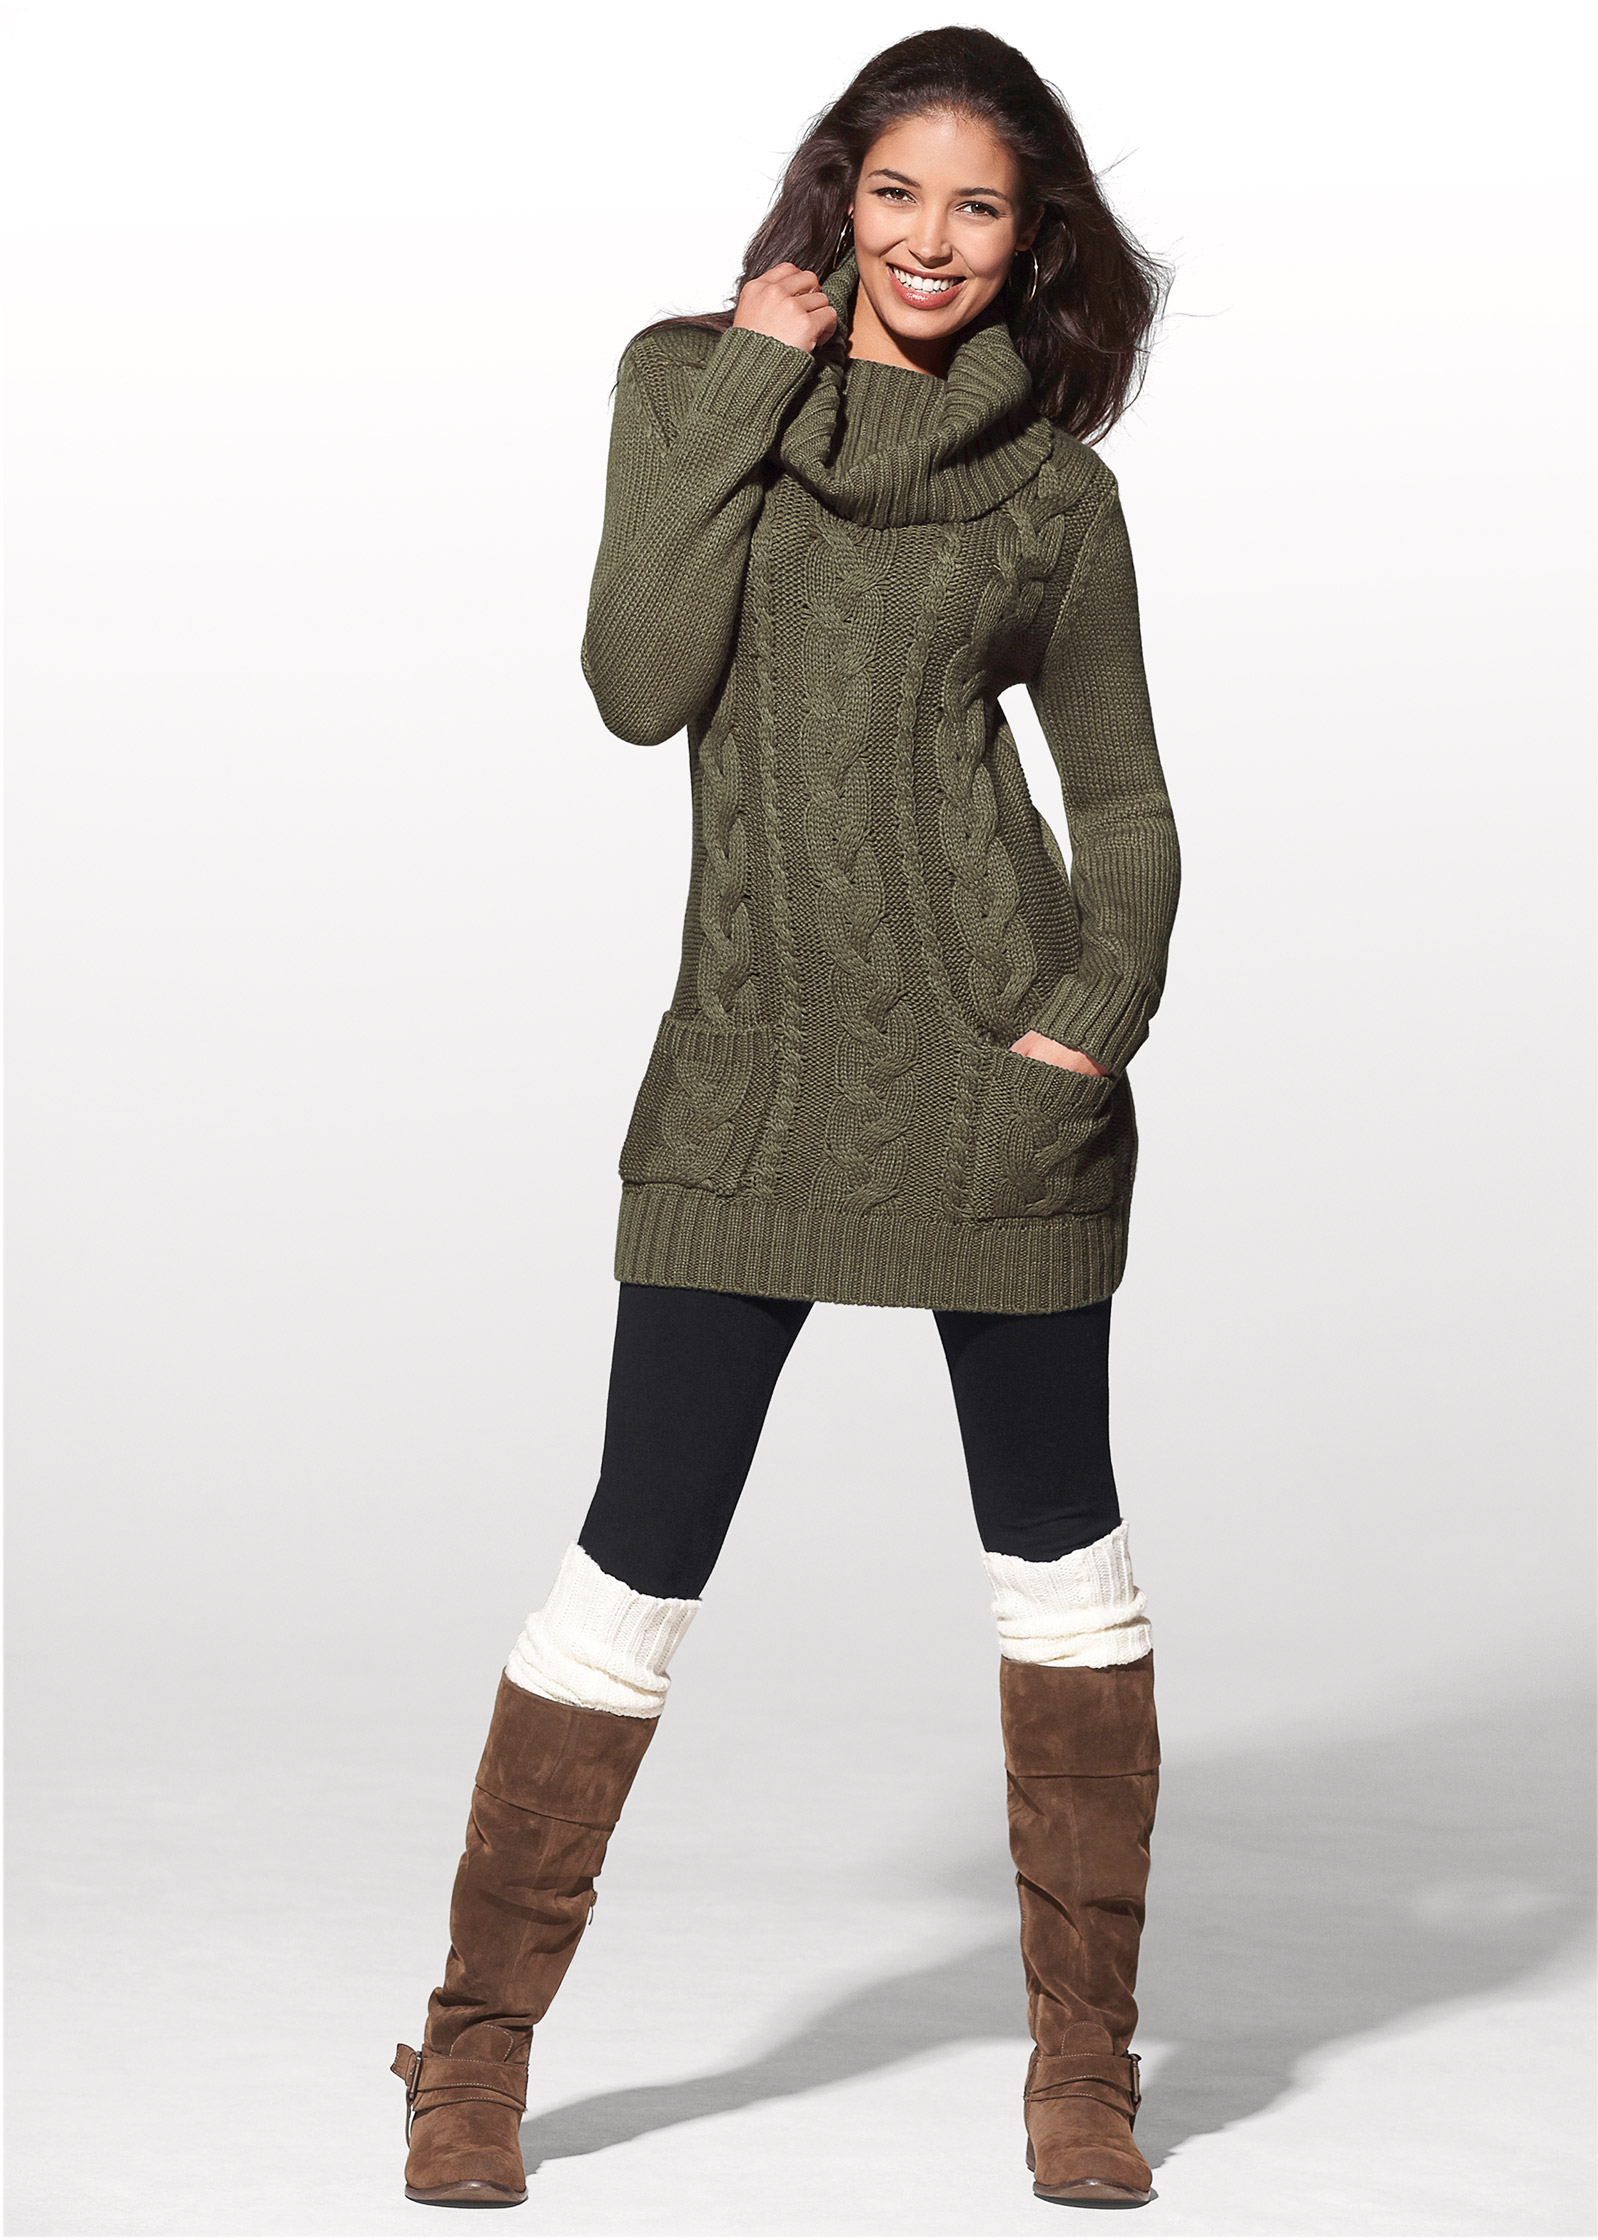 With Boots Sweater Dresses for Women